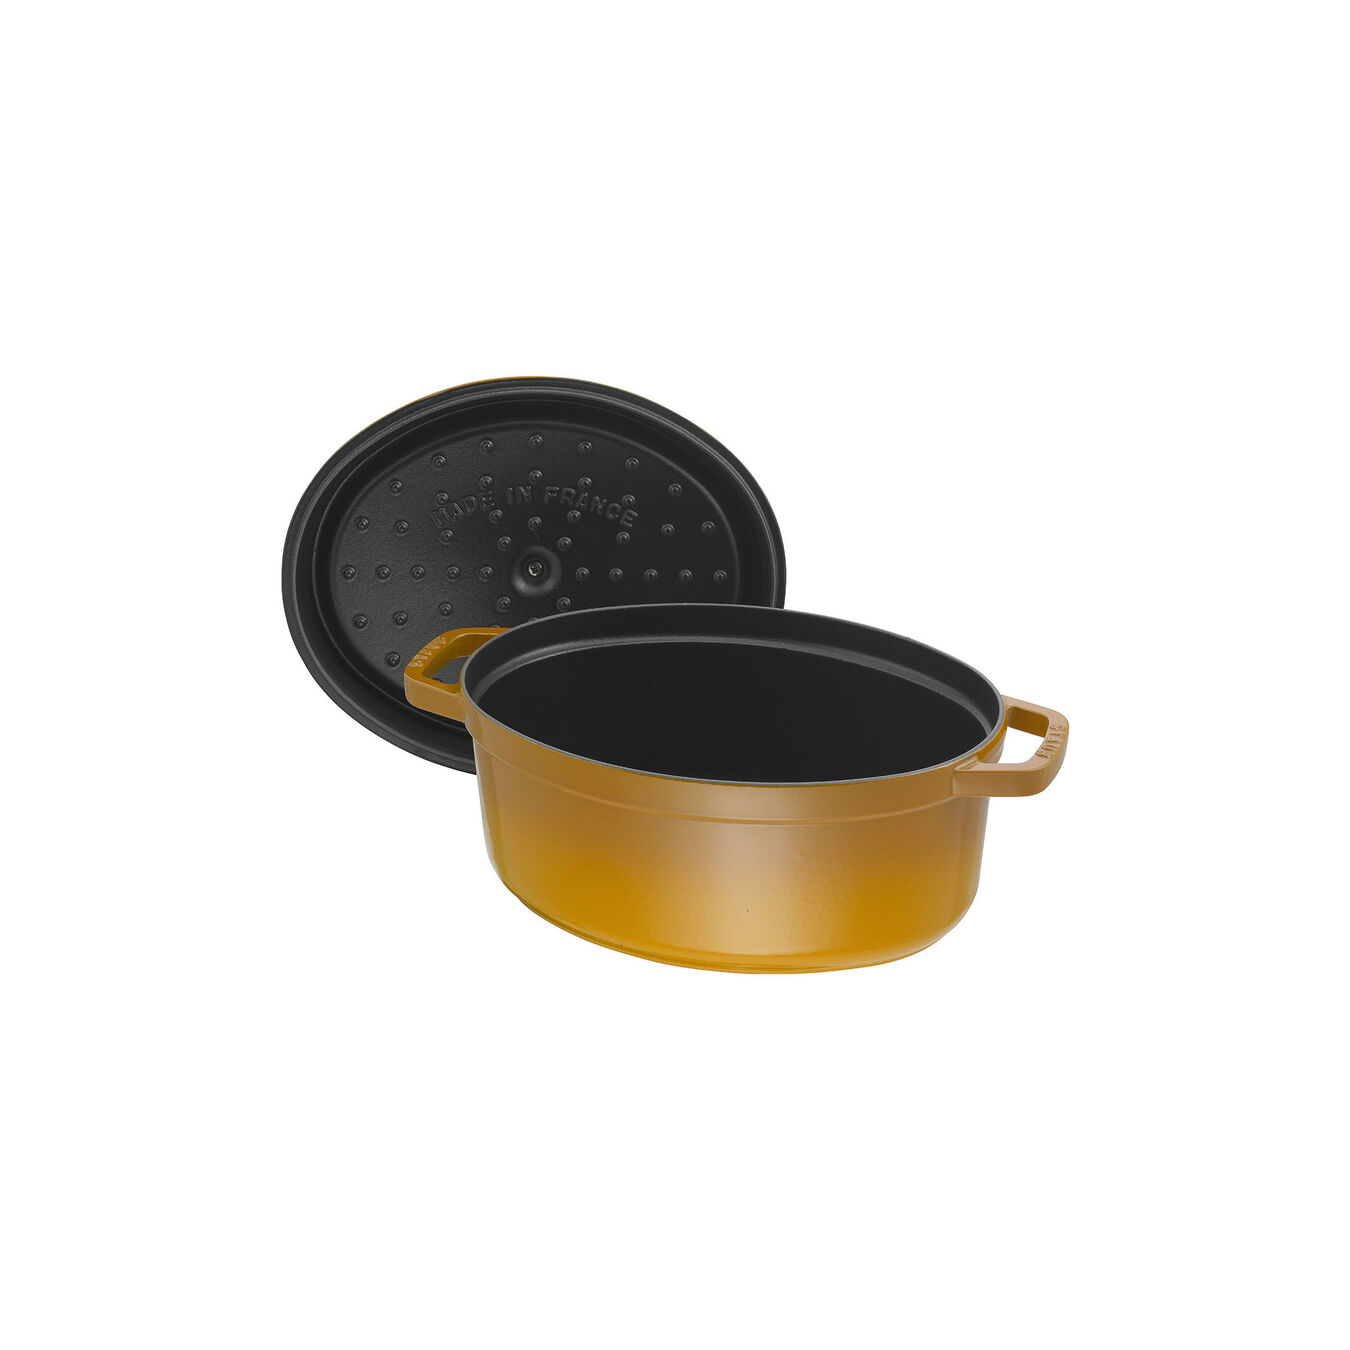 5.5 l oval Cocotte, mustard,,large 5